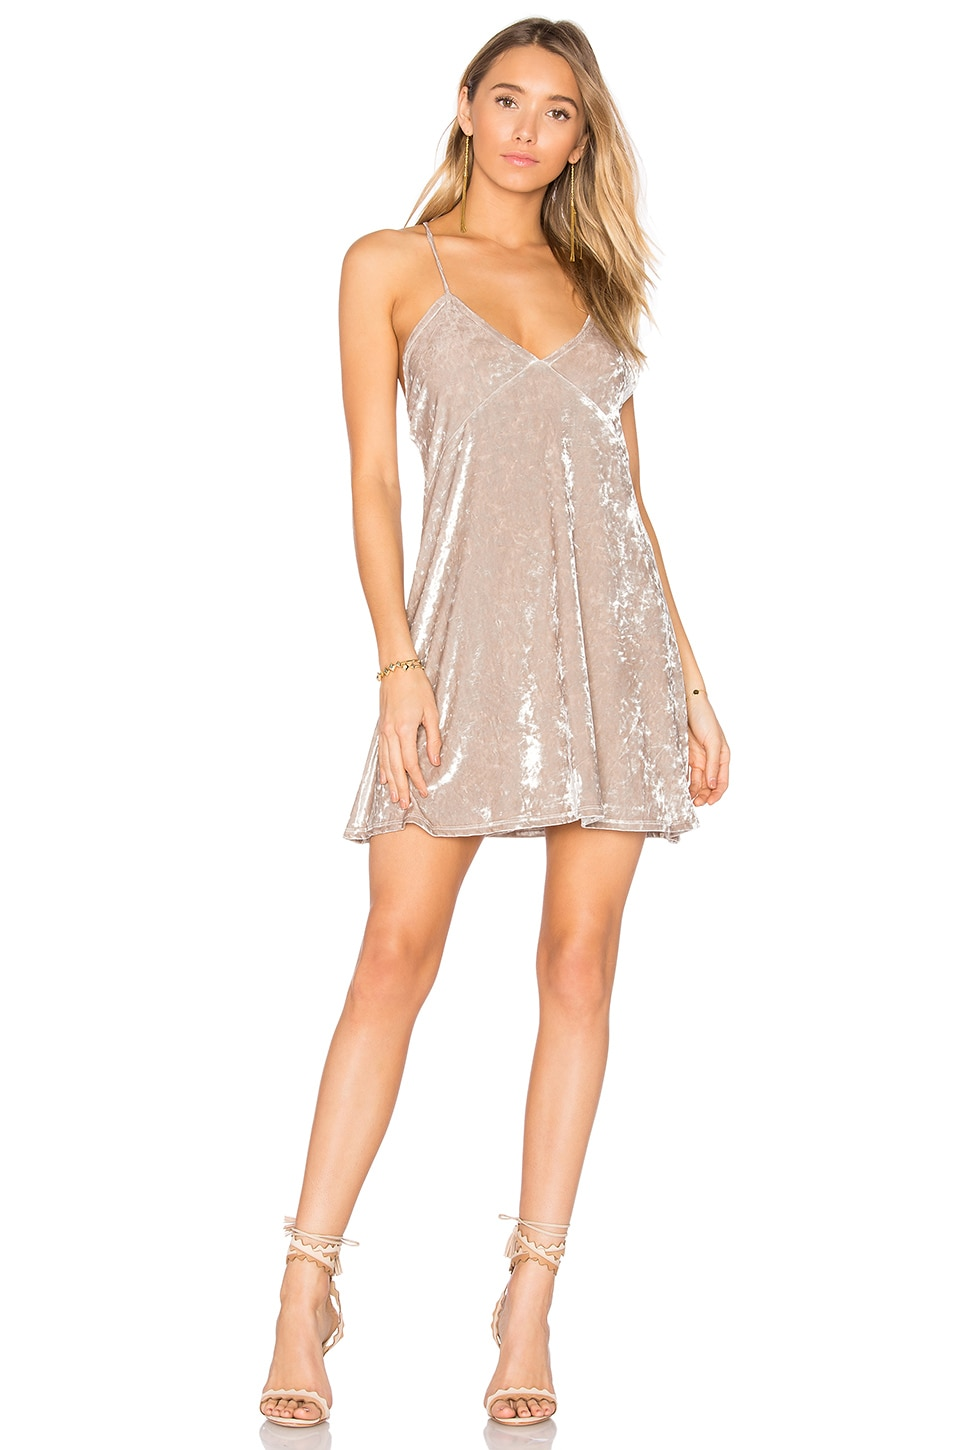 Privacy Please x REVOLVE Downtown Slip Dress in Cream